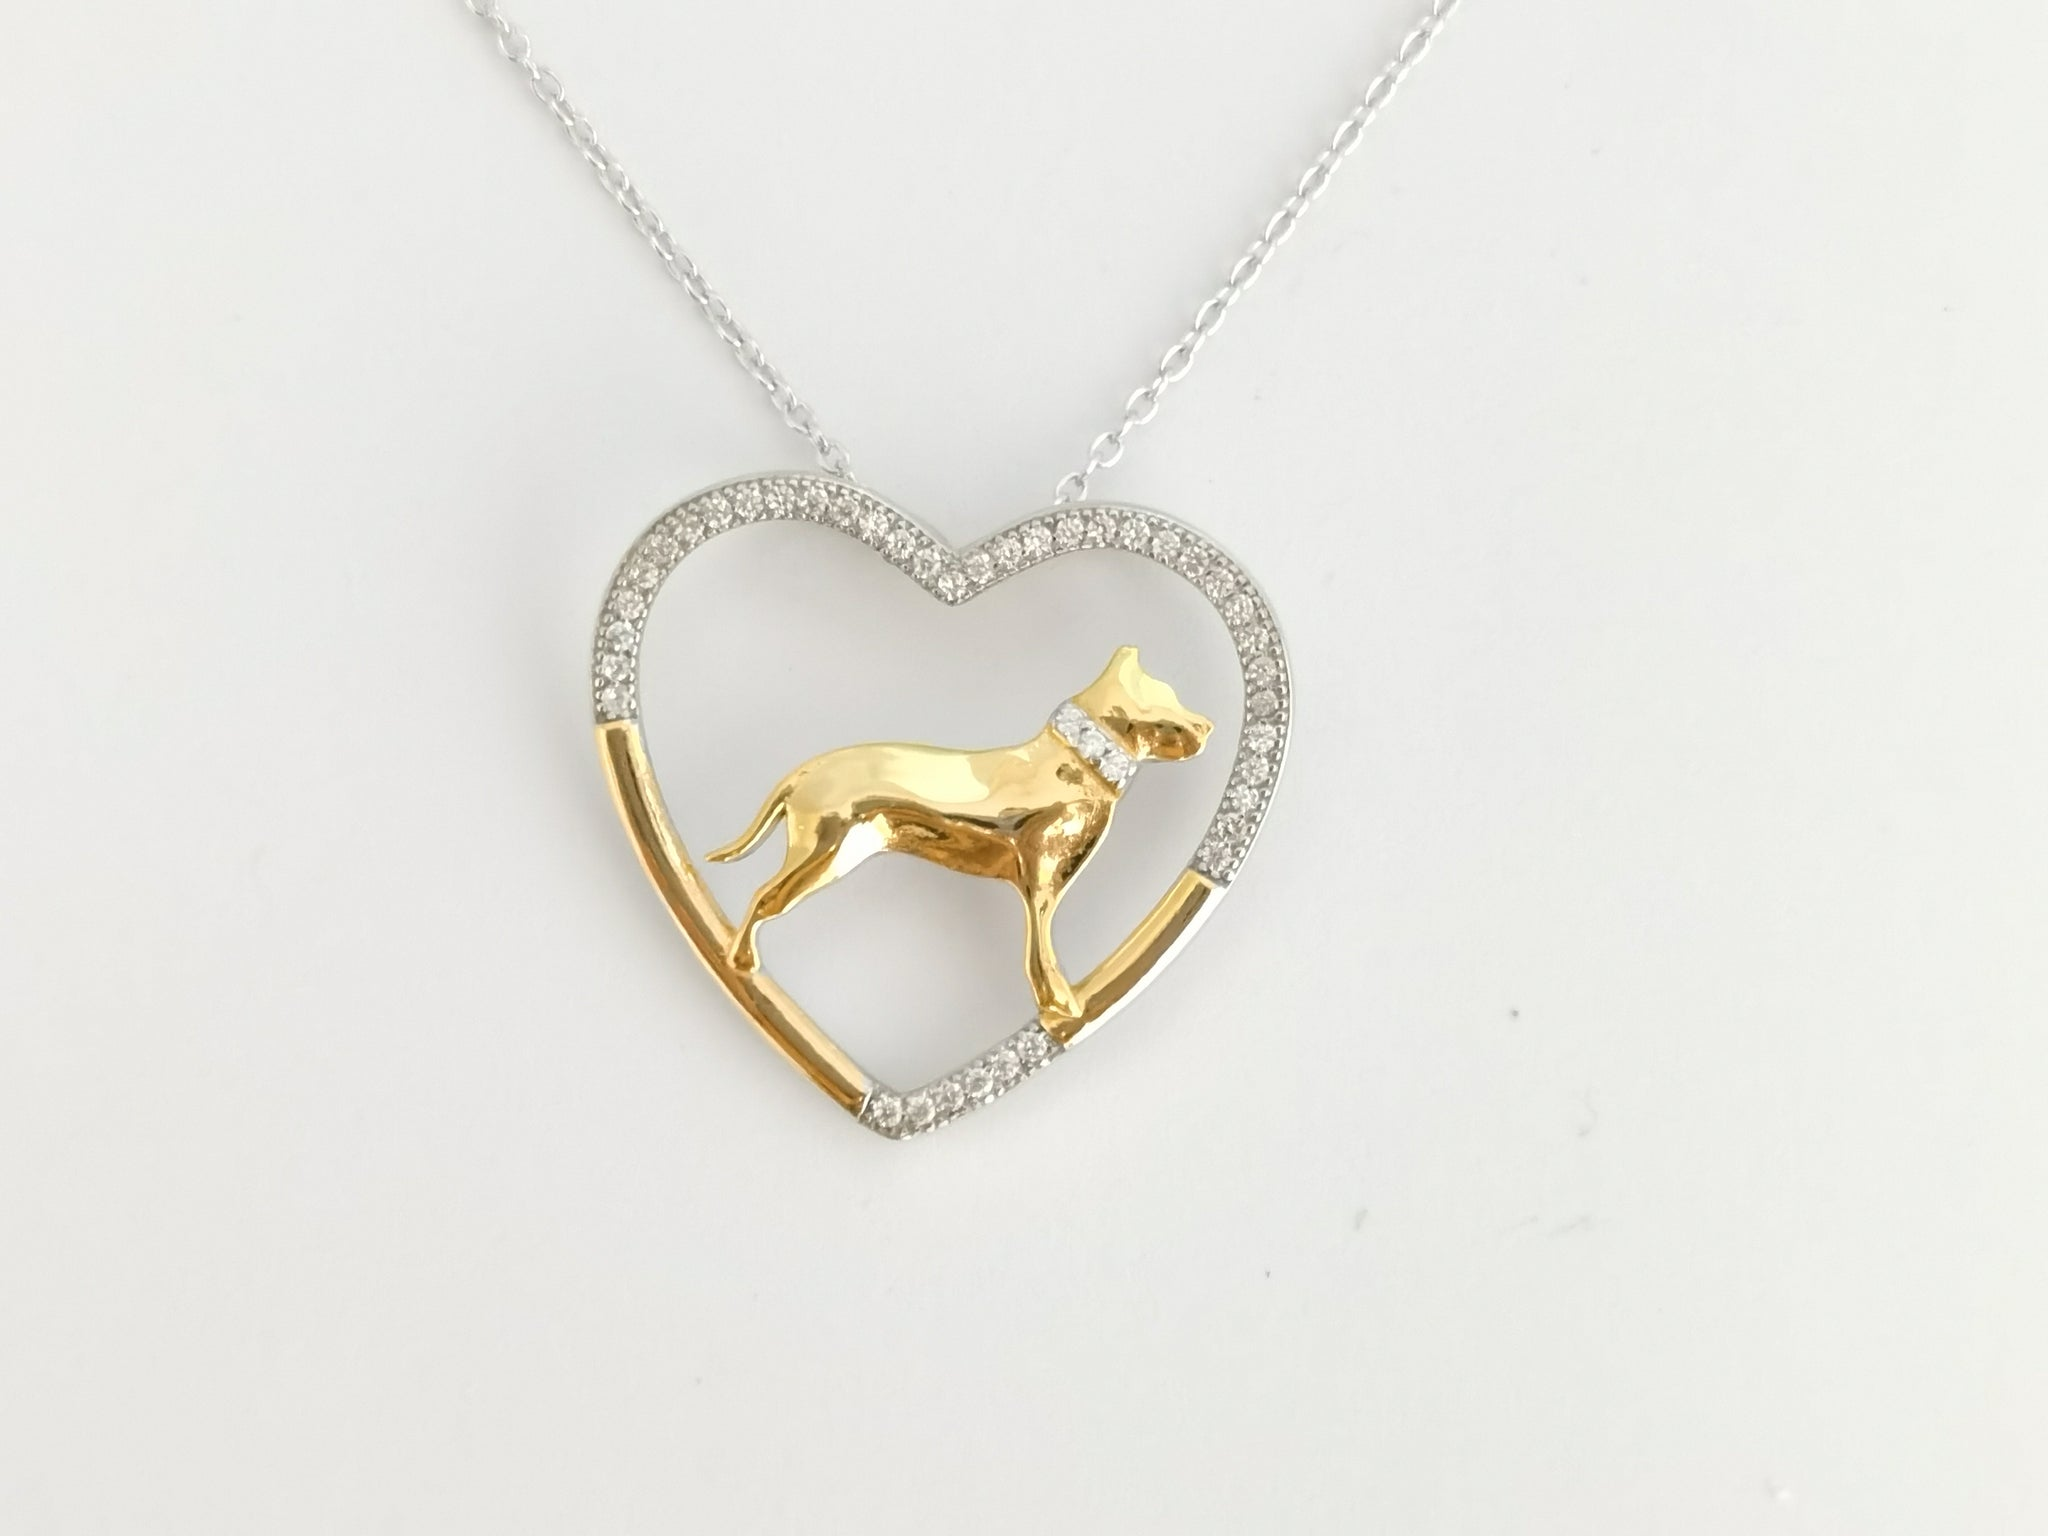 Pit Bull Dog 925 Silver Open Heart Necklace - D